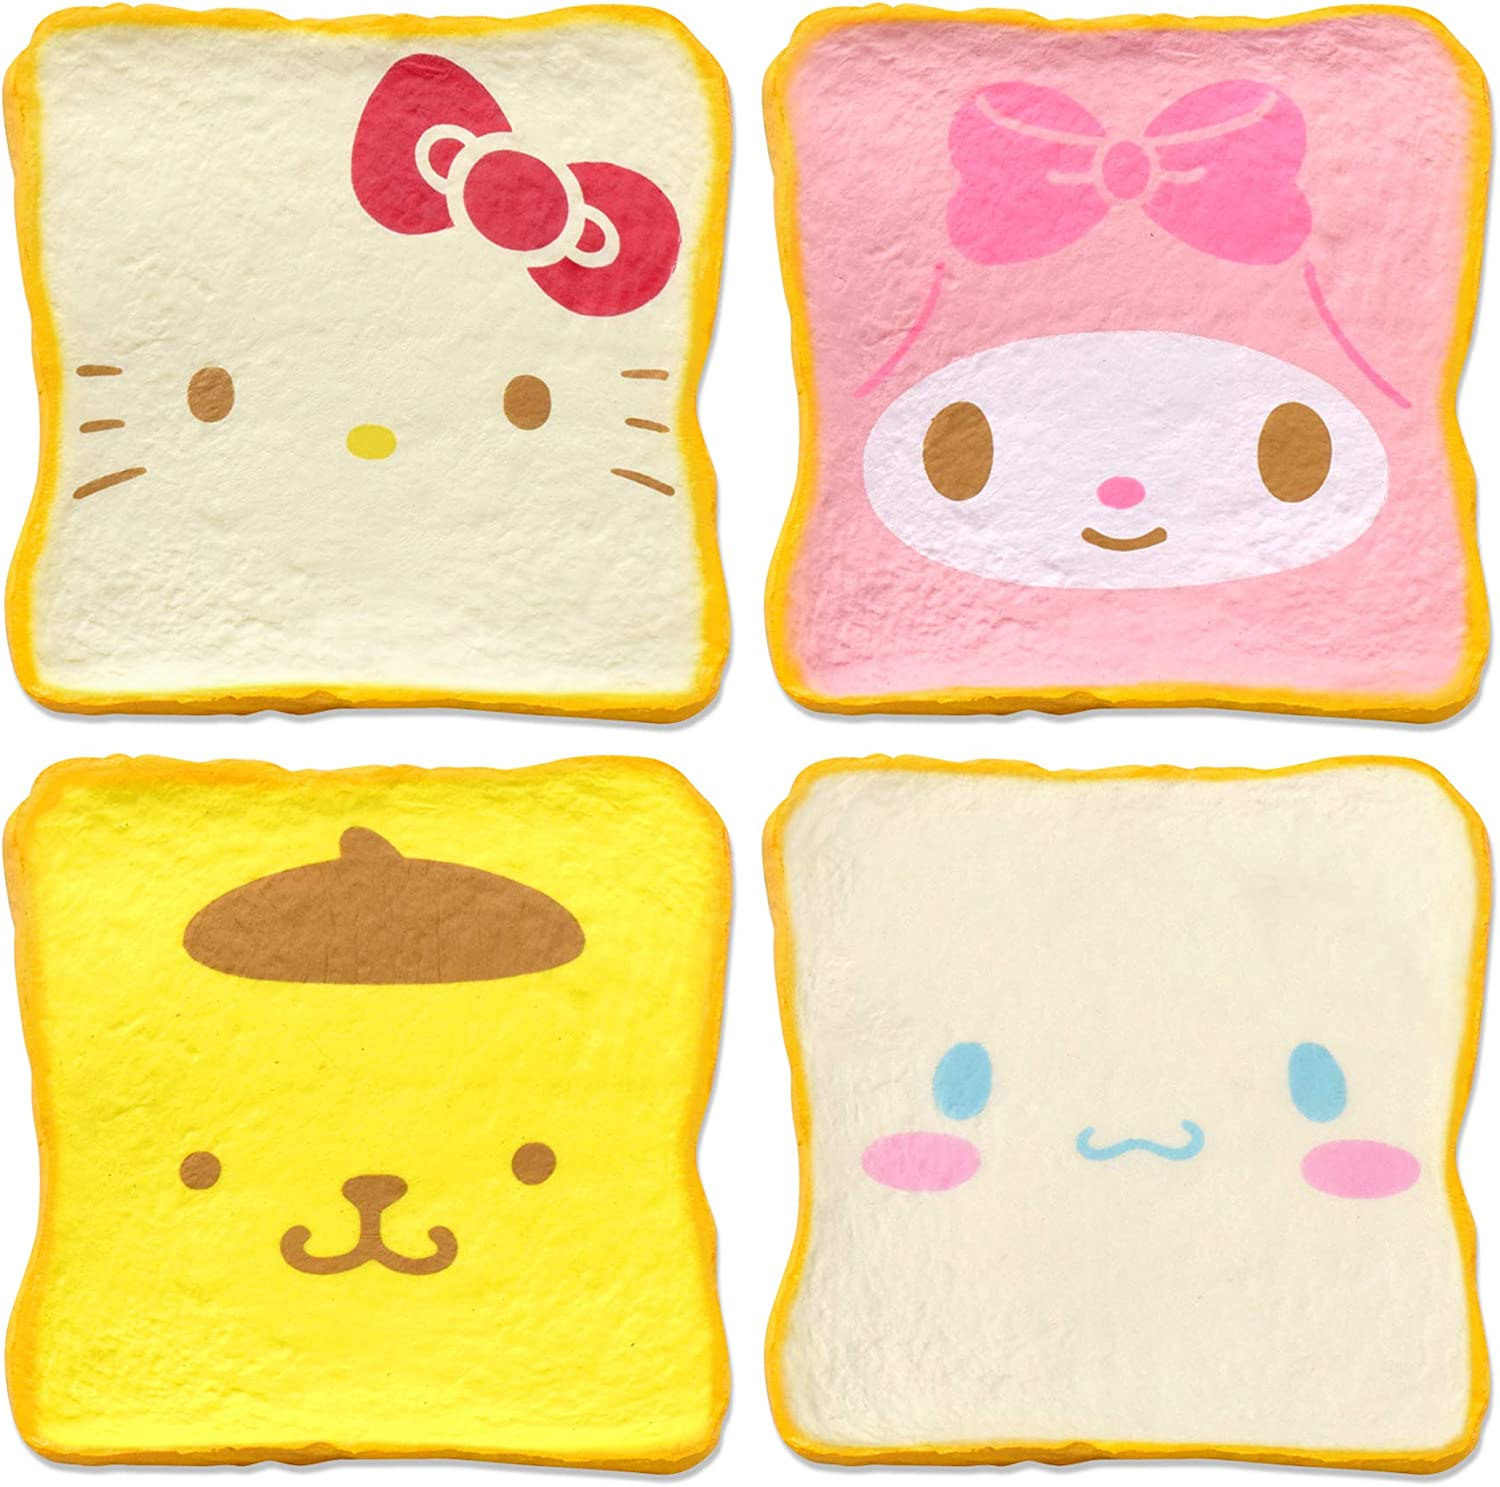 Hamee Sanrio Aromatic Milk Toast Bread Slow Rising Squishy Toy (All 4 Piece Set) for Party Favors, Stress Balls, Birthday Gifts, Prop Decoration, Kawaii Squishies for Kids, Girls, Boys, Adults